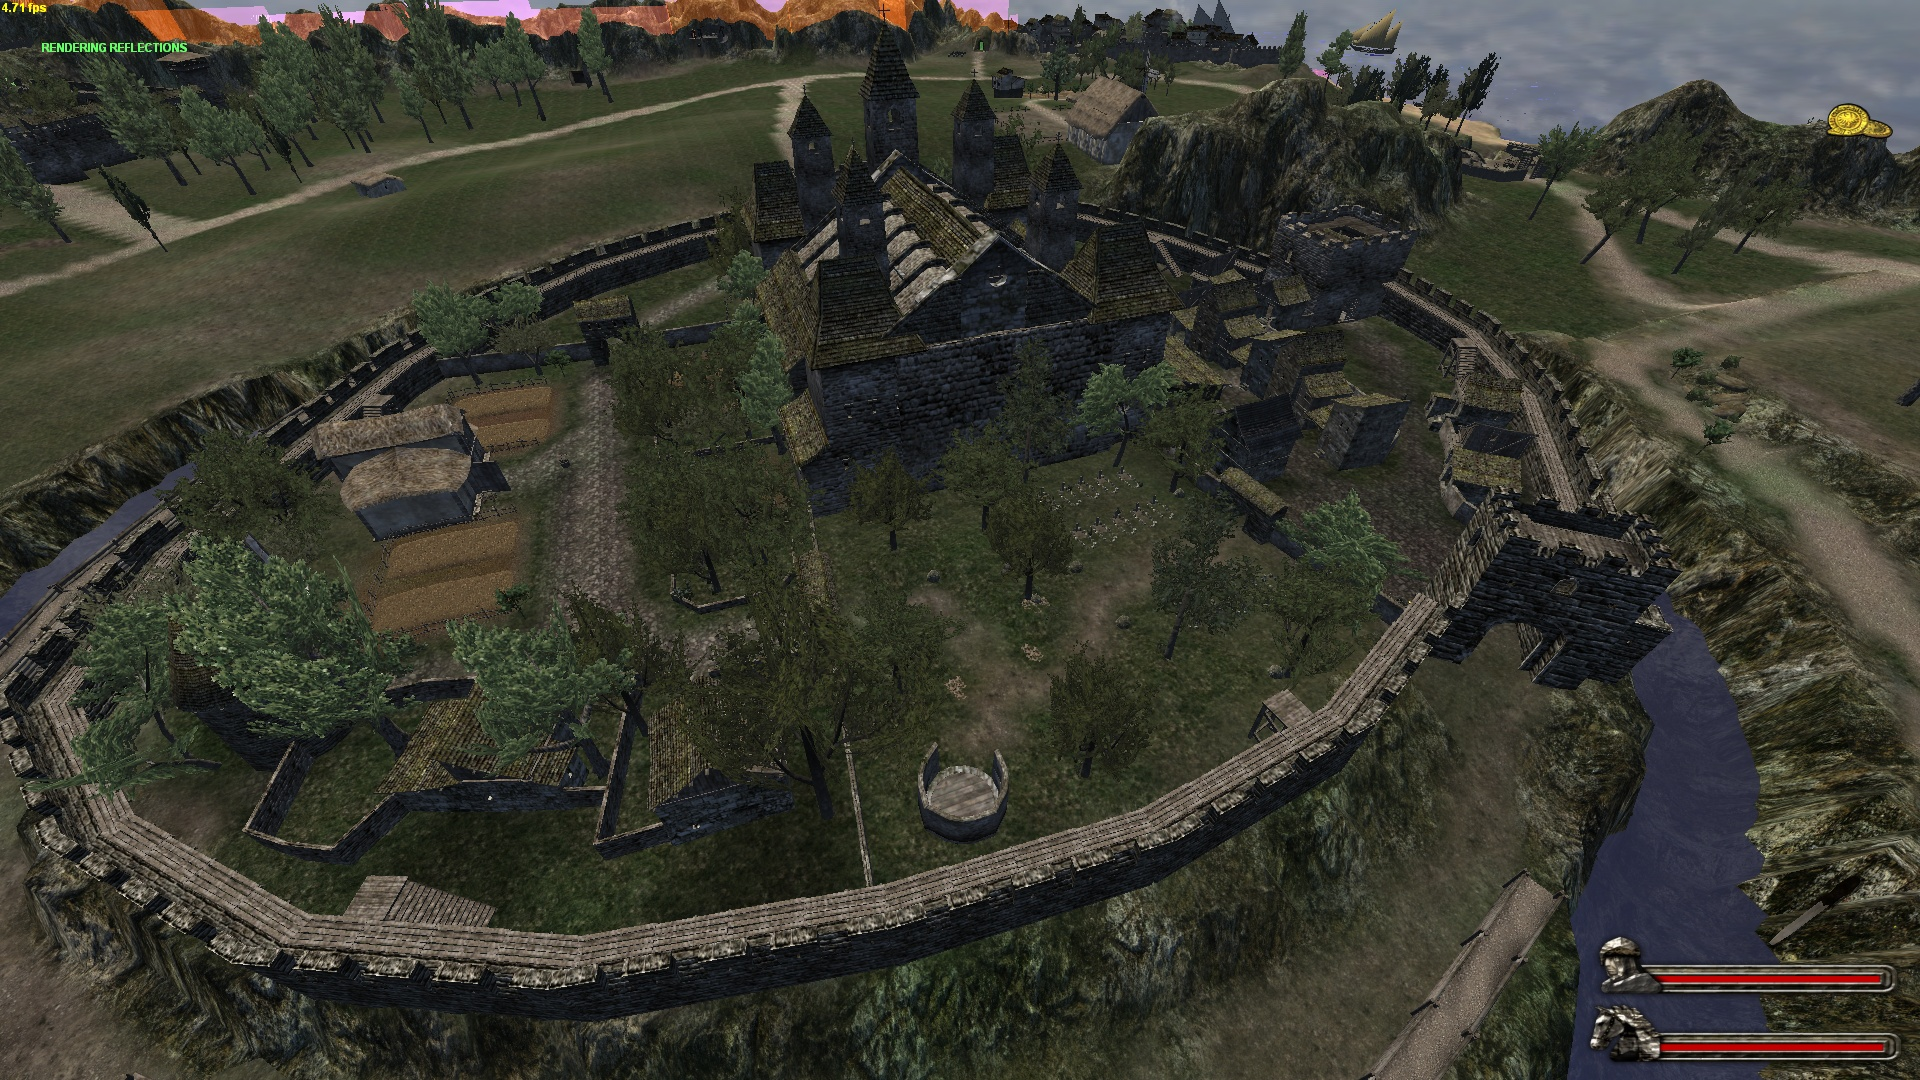 Map image feudal world mod for mount blade warband mod db report rss map view original gumiabroncs Choice Image